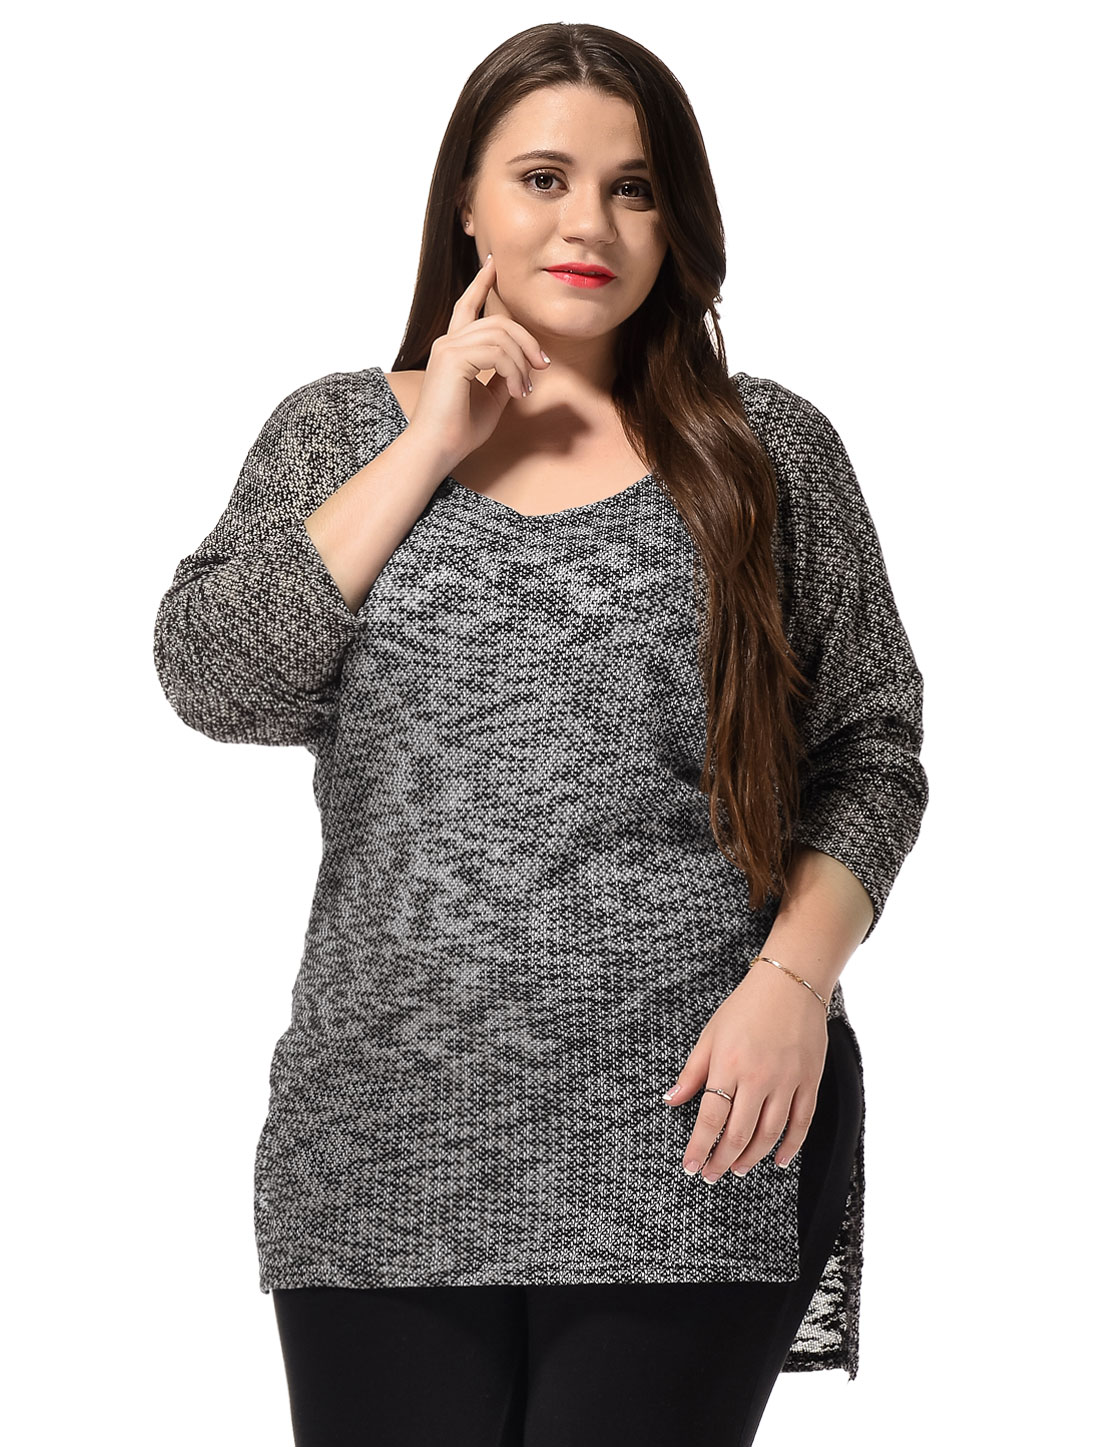 Women Plus Size Scoop Neck Lightweight Hi-Low Hem Knit Tops Gray 3X